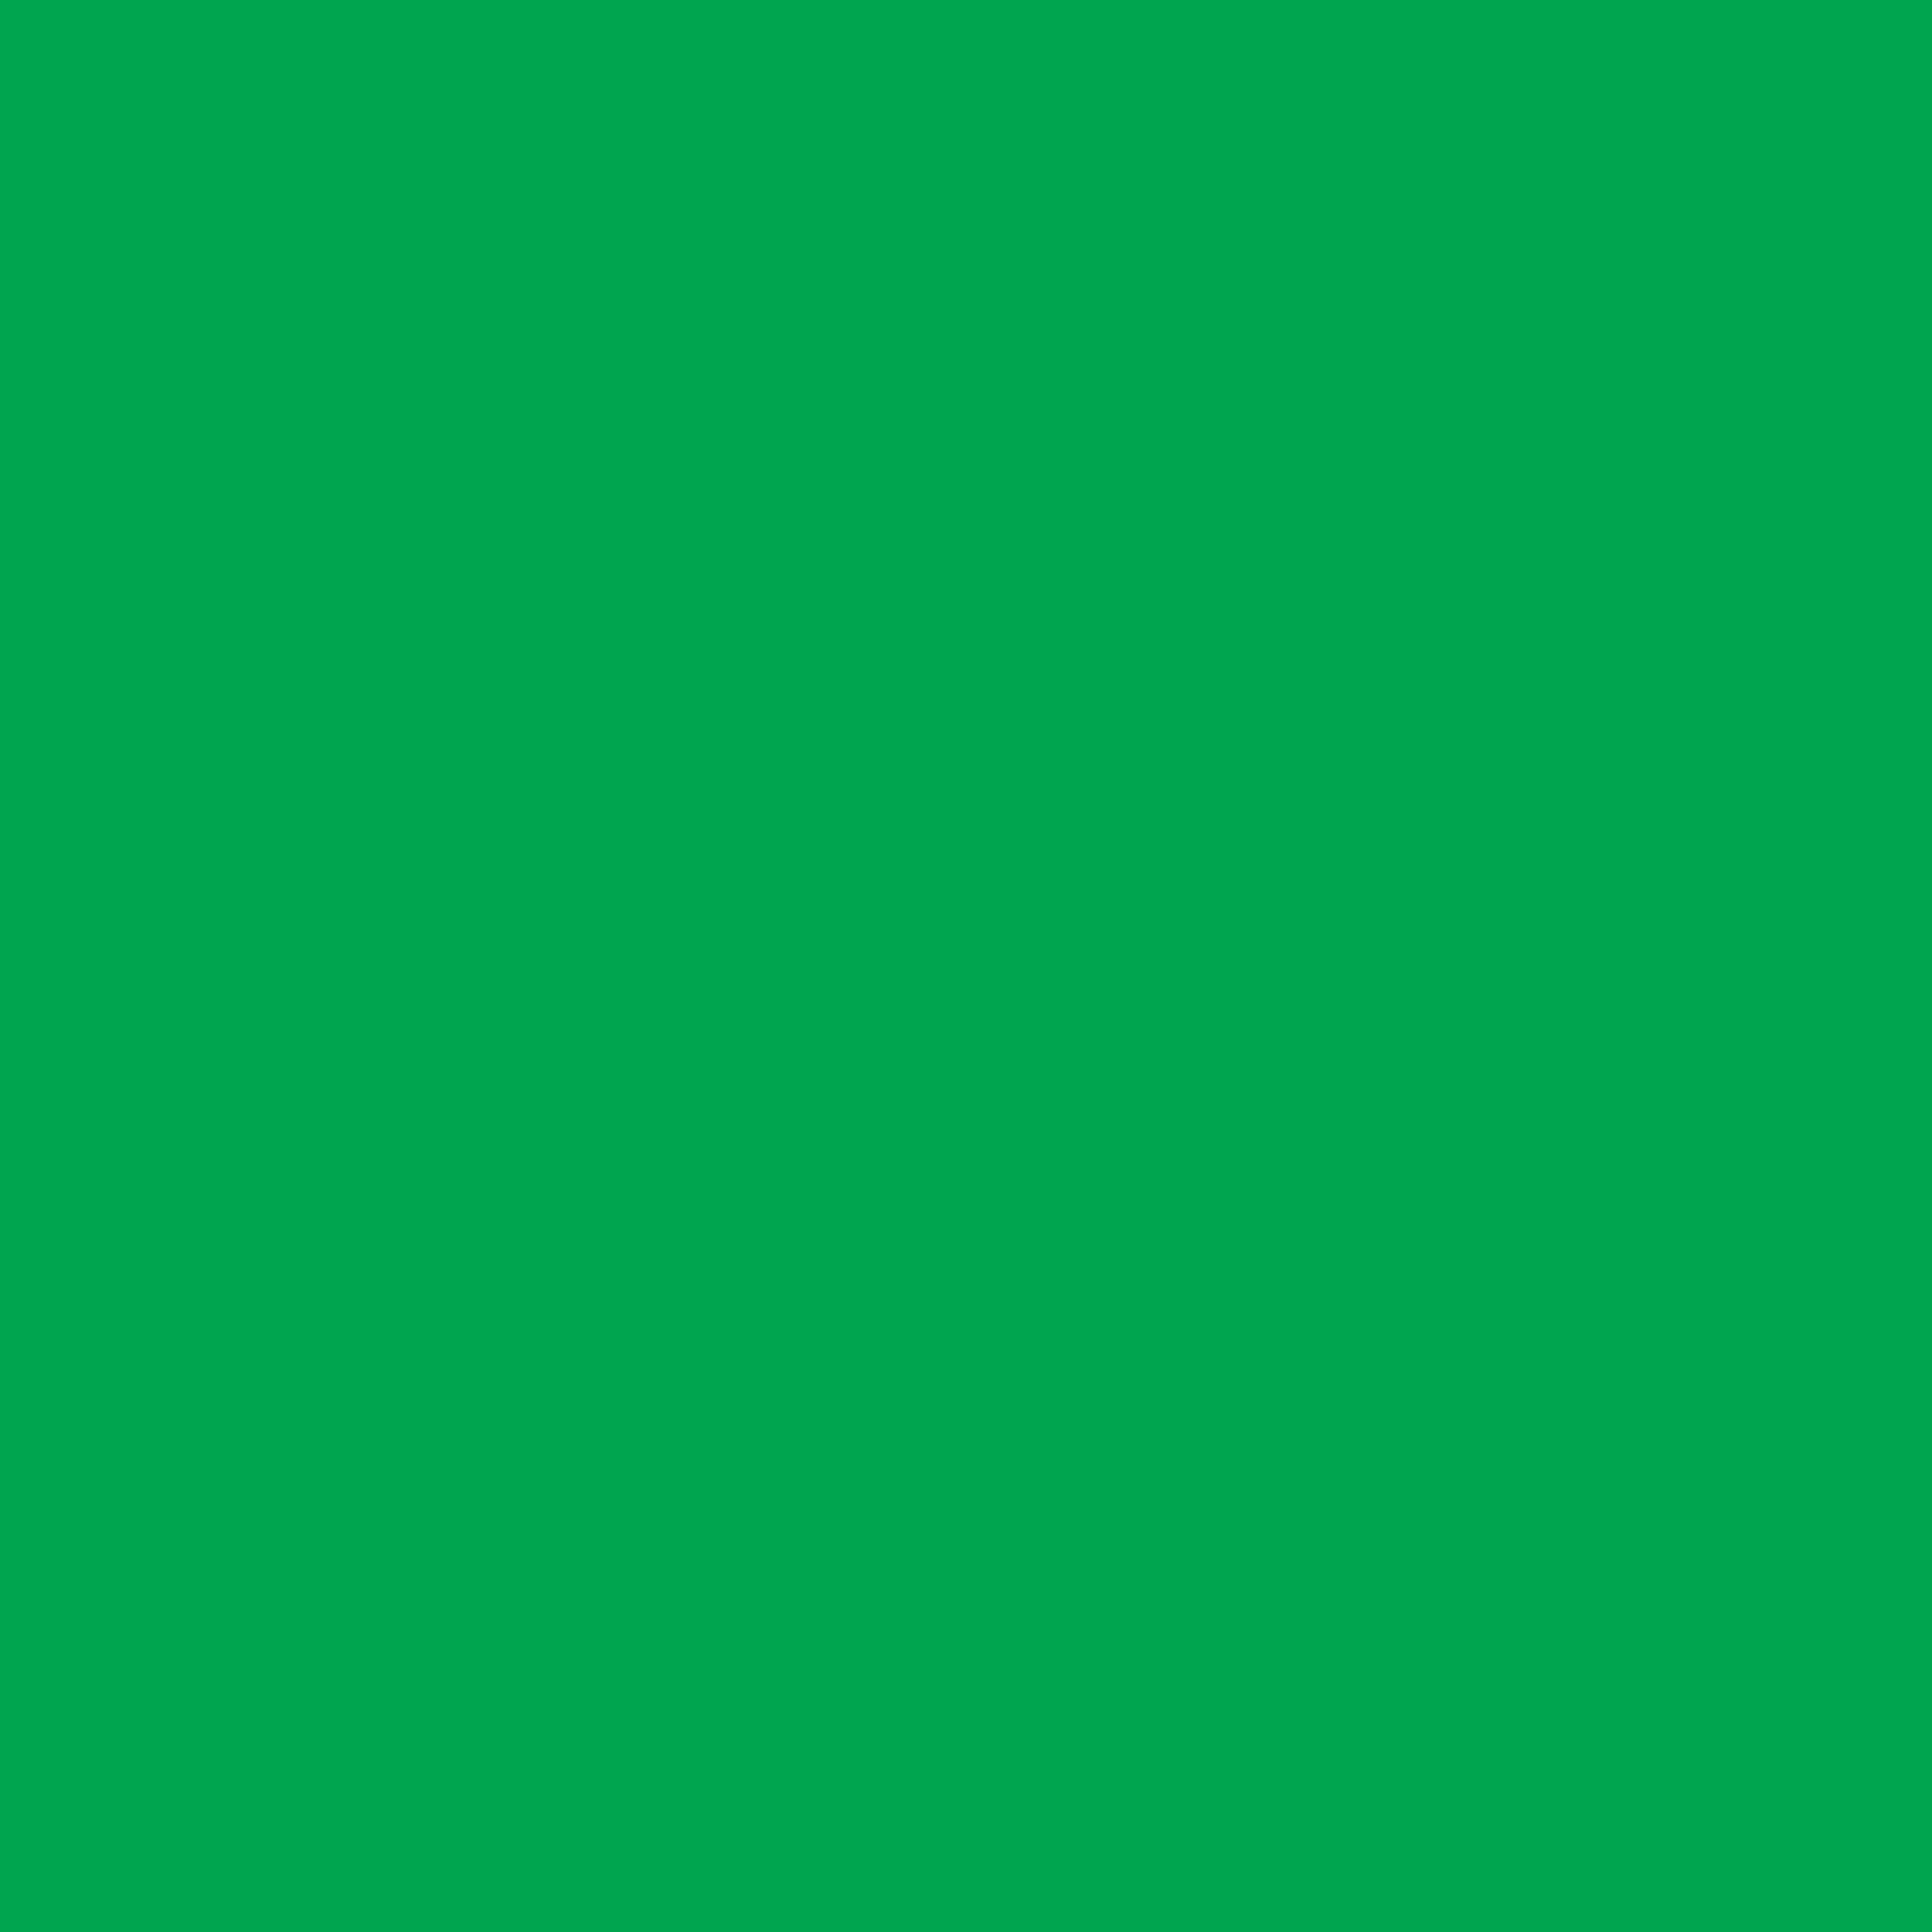 2048x2048 Green Pigment Solid Color Background